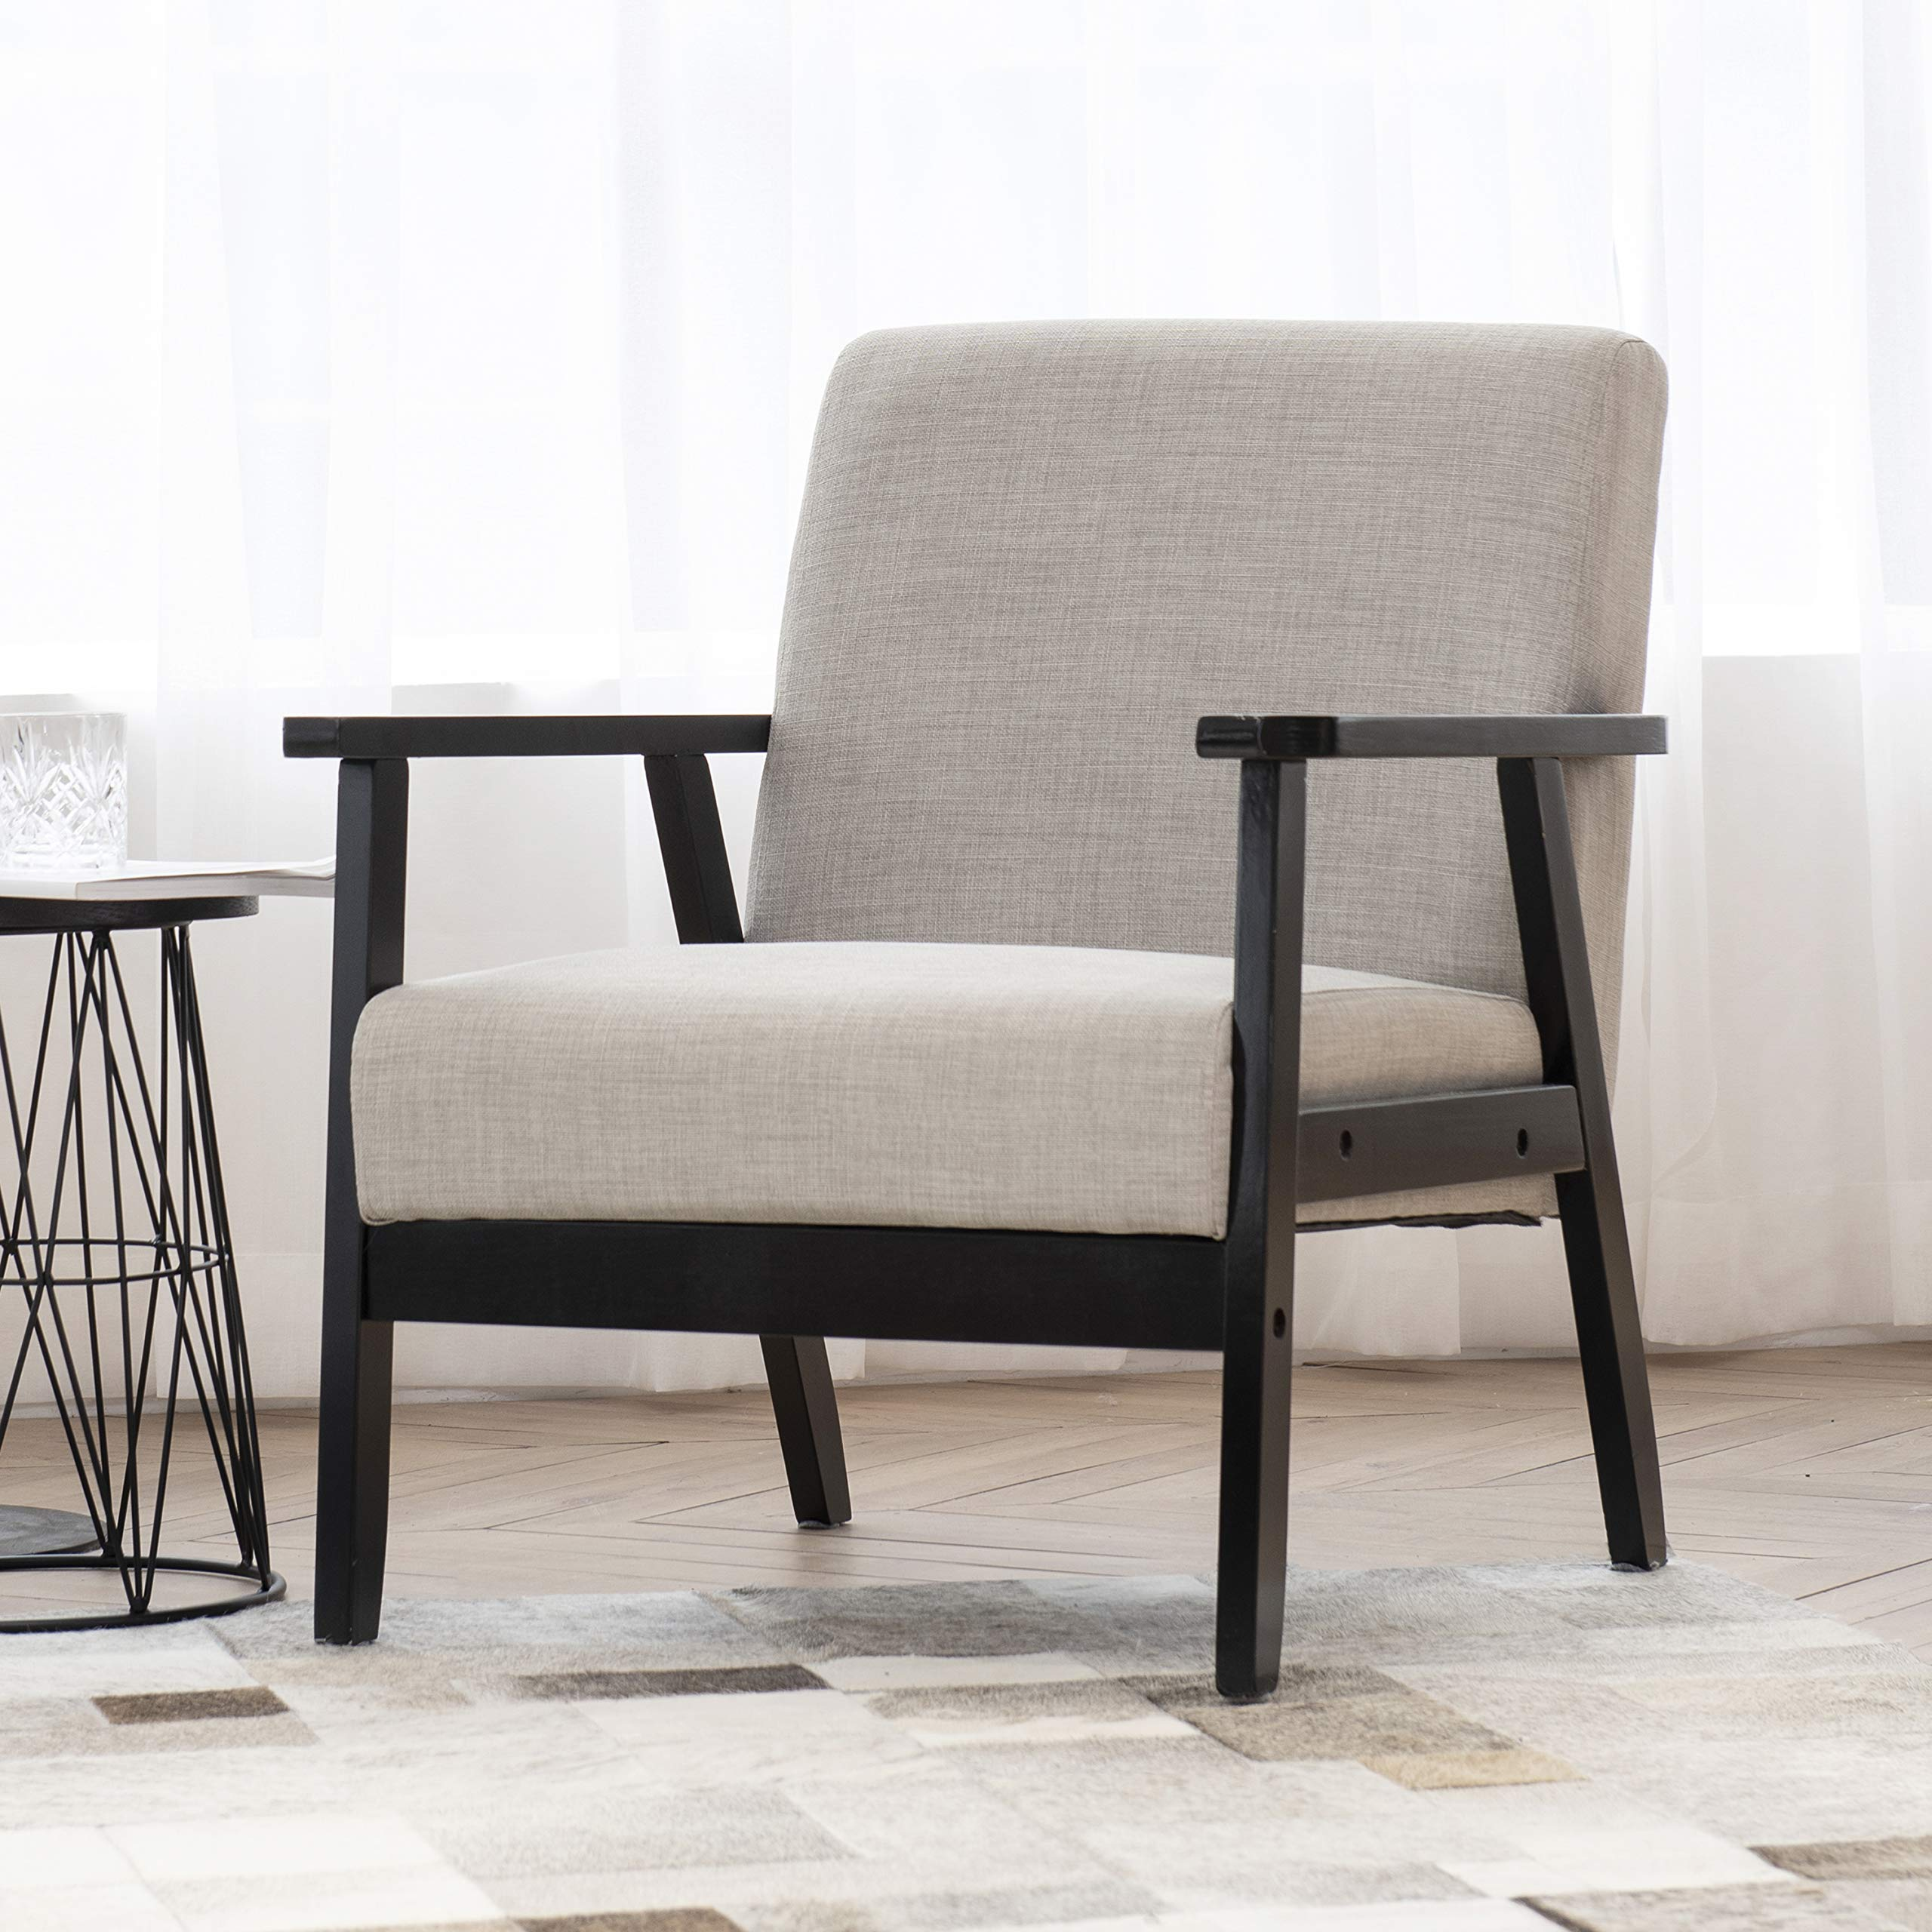 Art Leon Modern Fabric Upholstered Accent Chair,Solid Wood Frame Low Lounge Armchair for Living Room Bedroom Reception Apartment Dorms,Grey by Art Leon